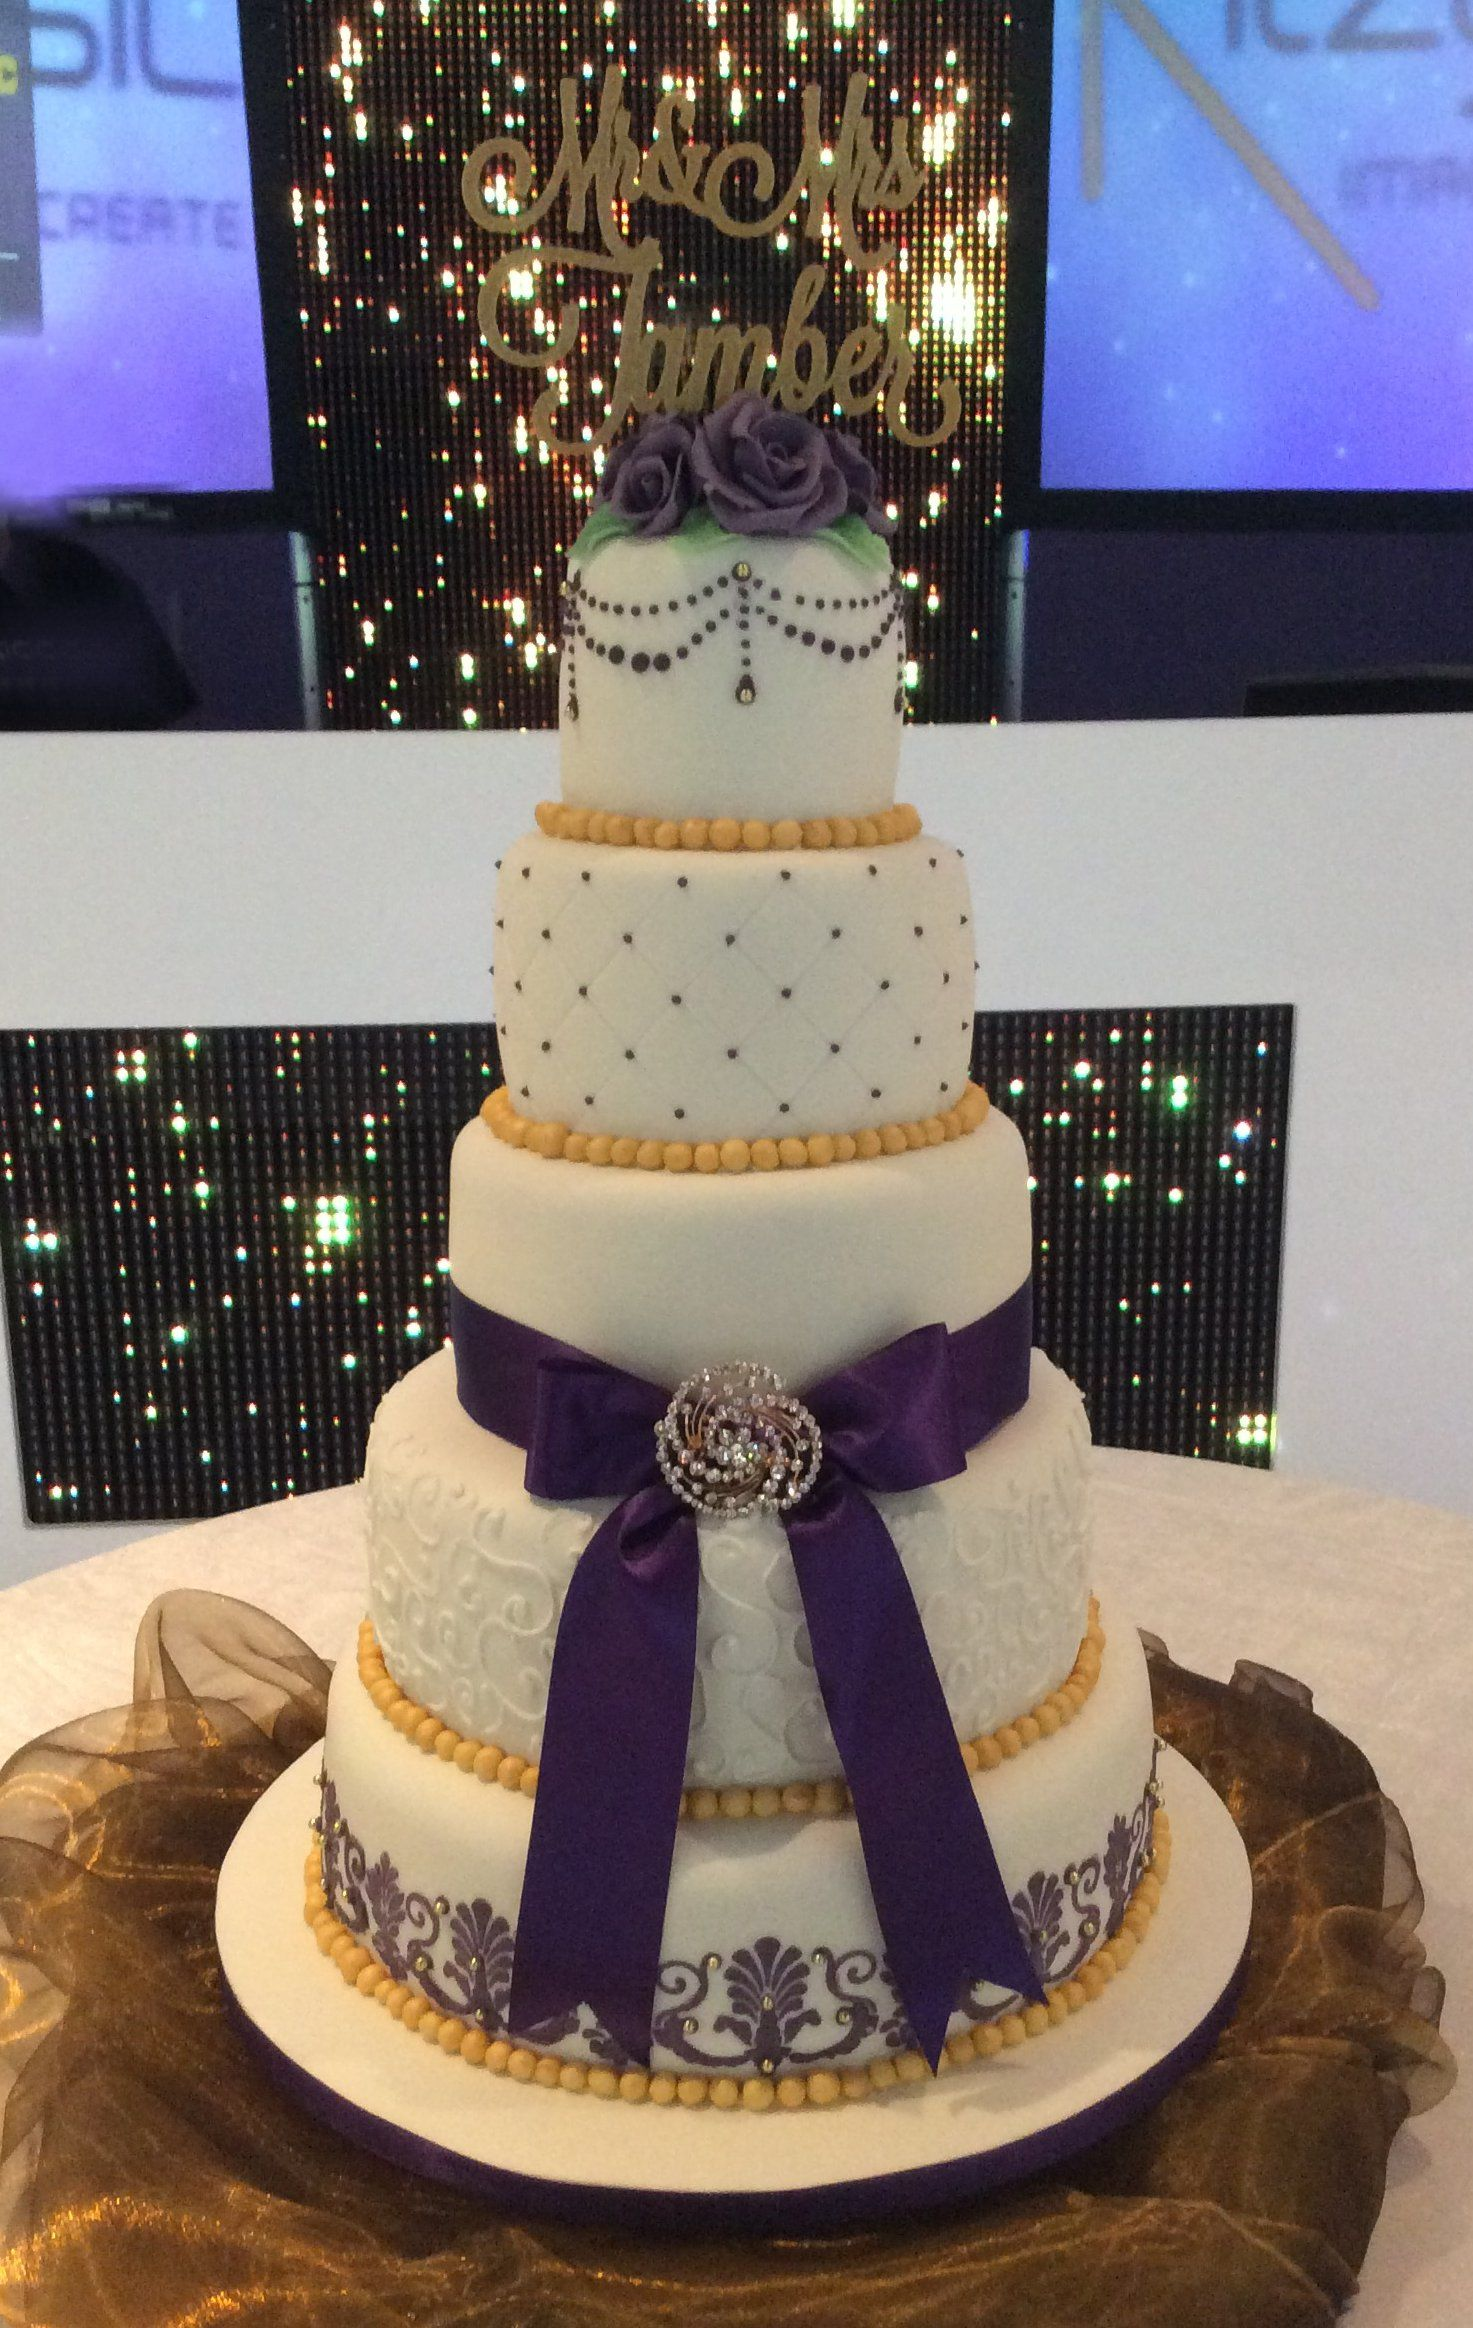 Geeta 5 Tier Purple Gold Theme Cake With Personalised Topper